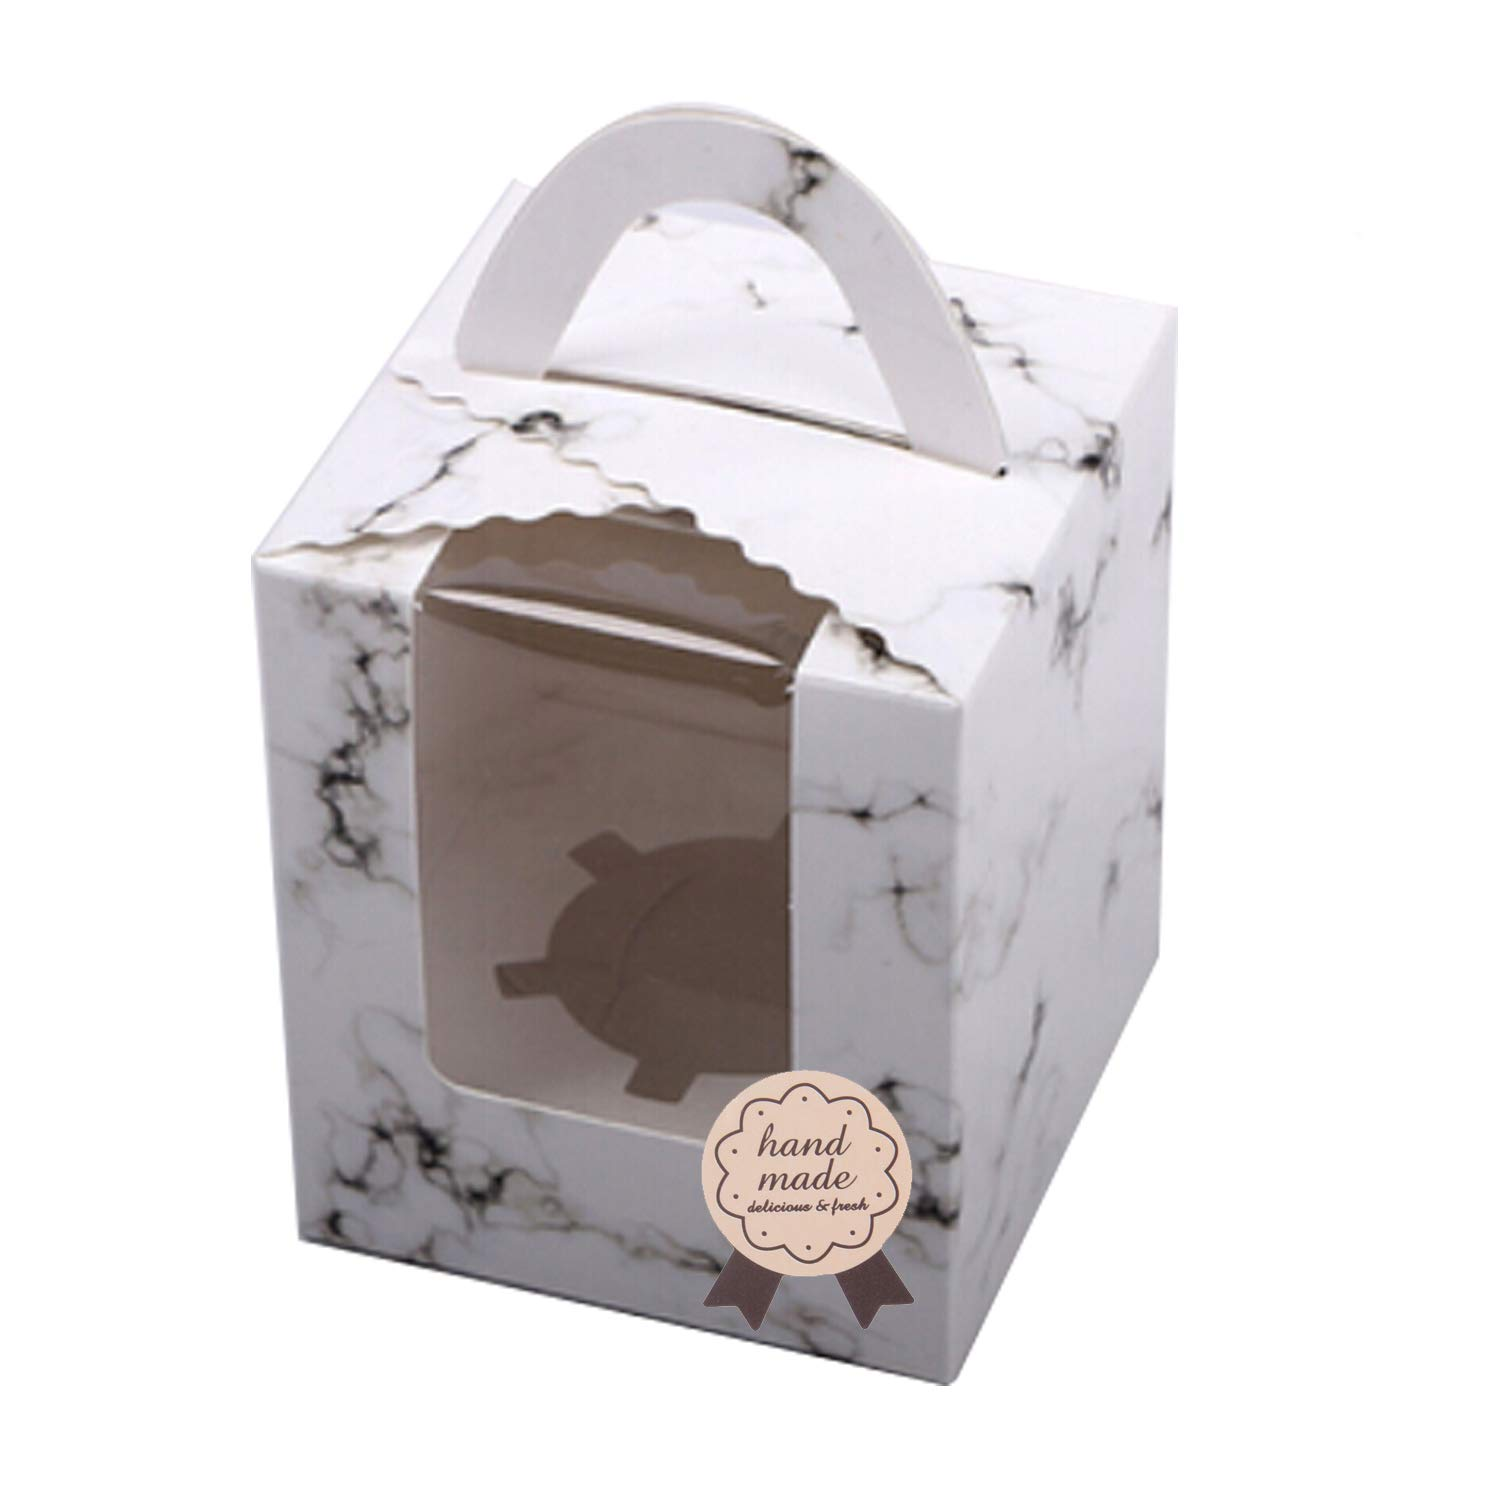 Set of 12 Portable Cupcake Boxes Containers PVC Window/Cardboard Insert (Marble Pattern)